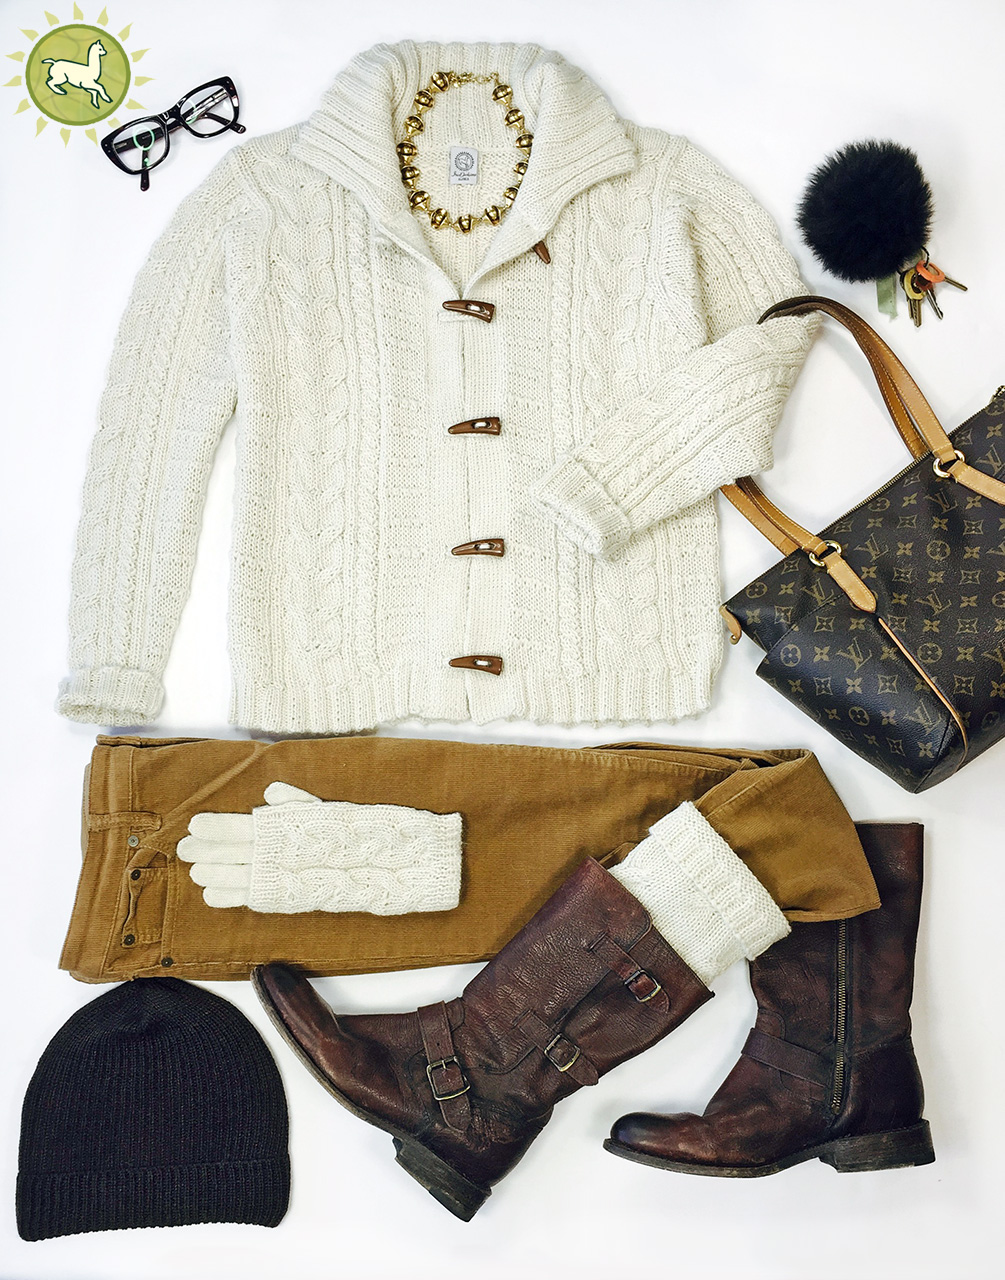 Traditional Aran Cardigan Fashion layout with cords, gloves, boot cuff, cap and key fob